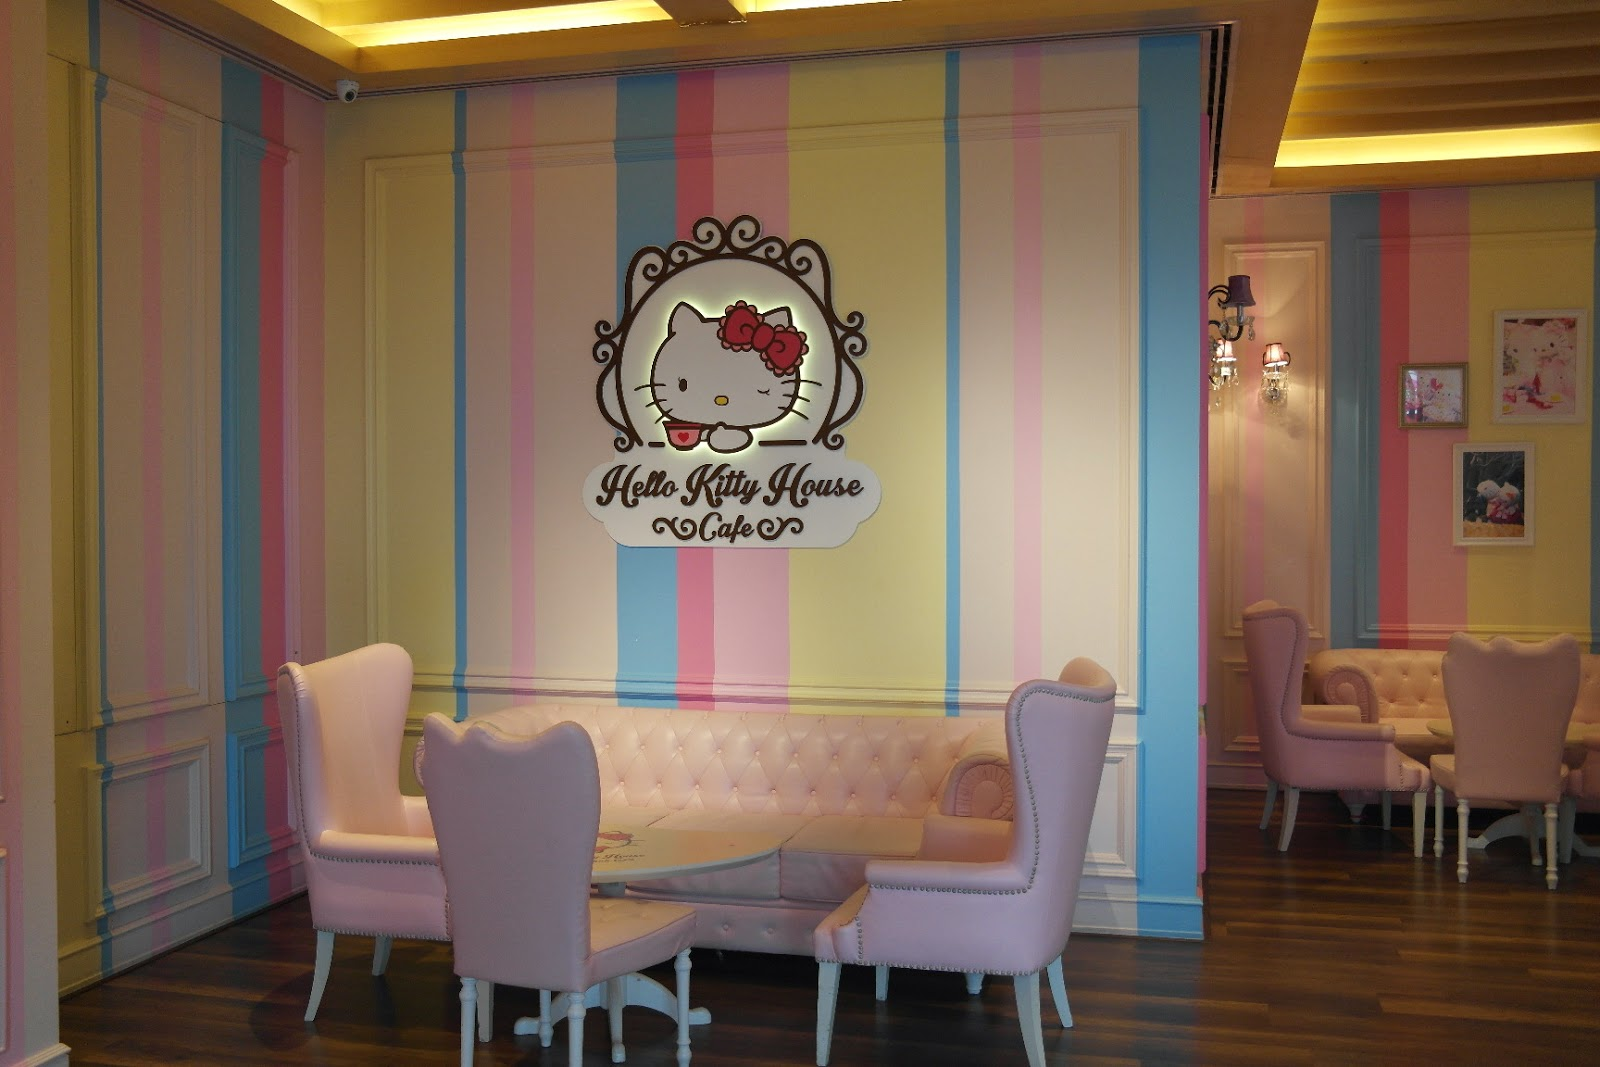 Hello kitty dining room - Heard From My Friend That Weekdays Early Afternoon Its Always A Good Time To Come Hello Kitty Cafe Because There Are Lesser People